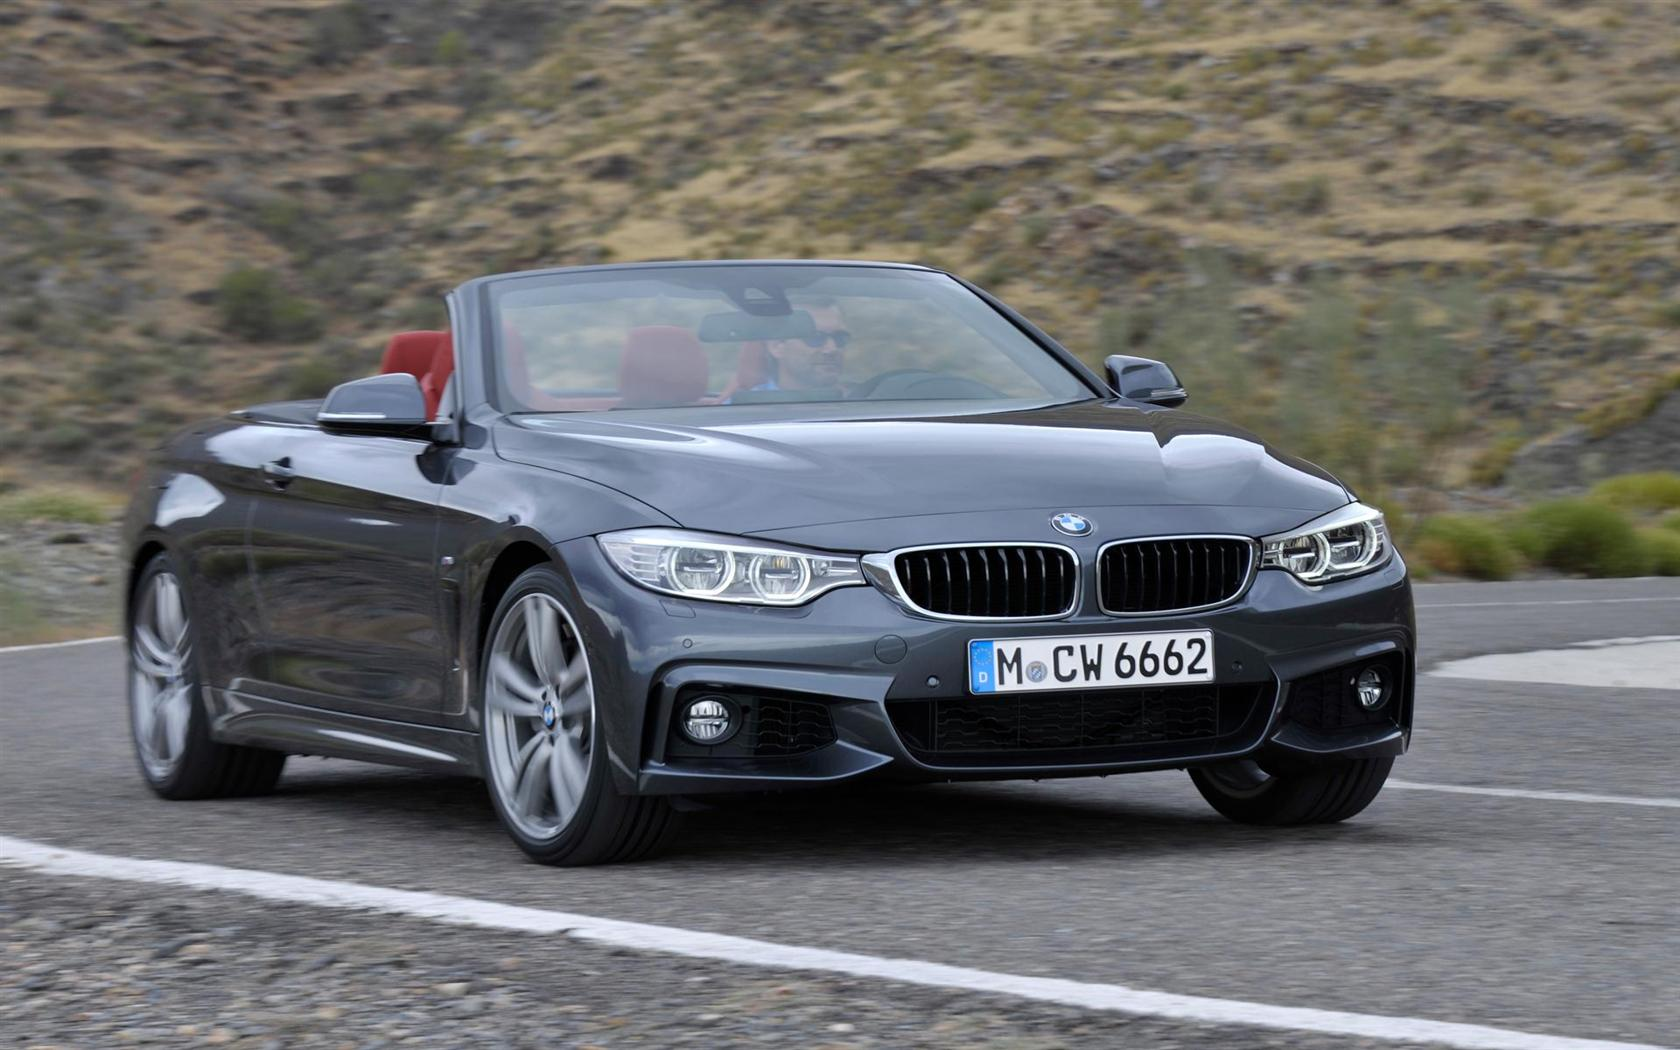 Bmw 3 series convertible front angle road  № 850556 загрузить